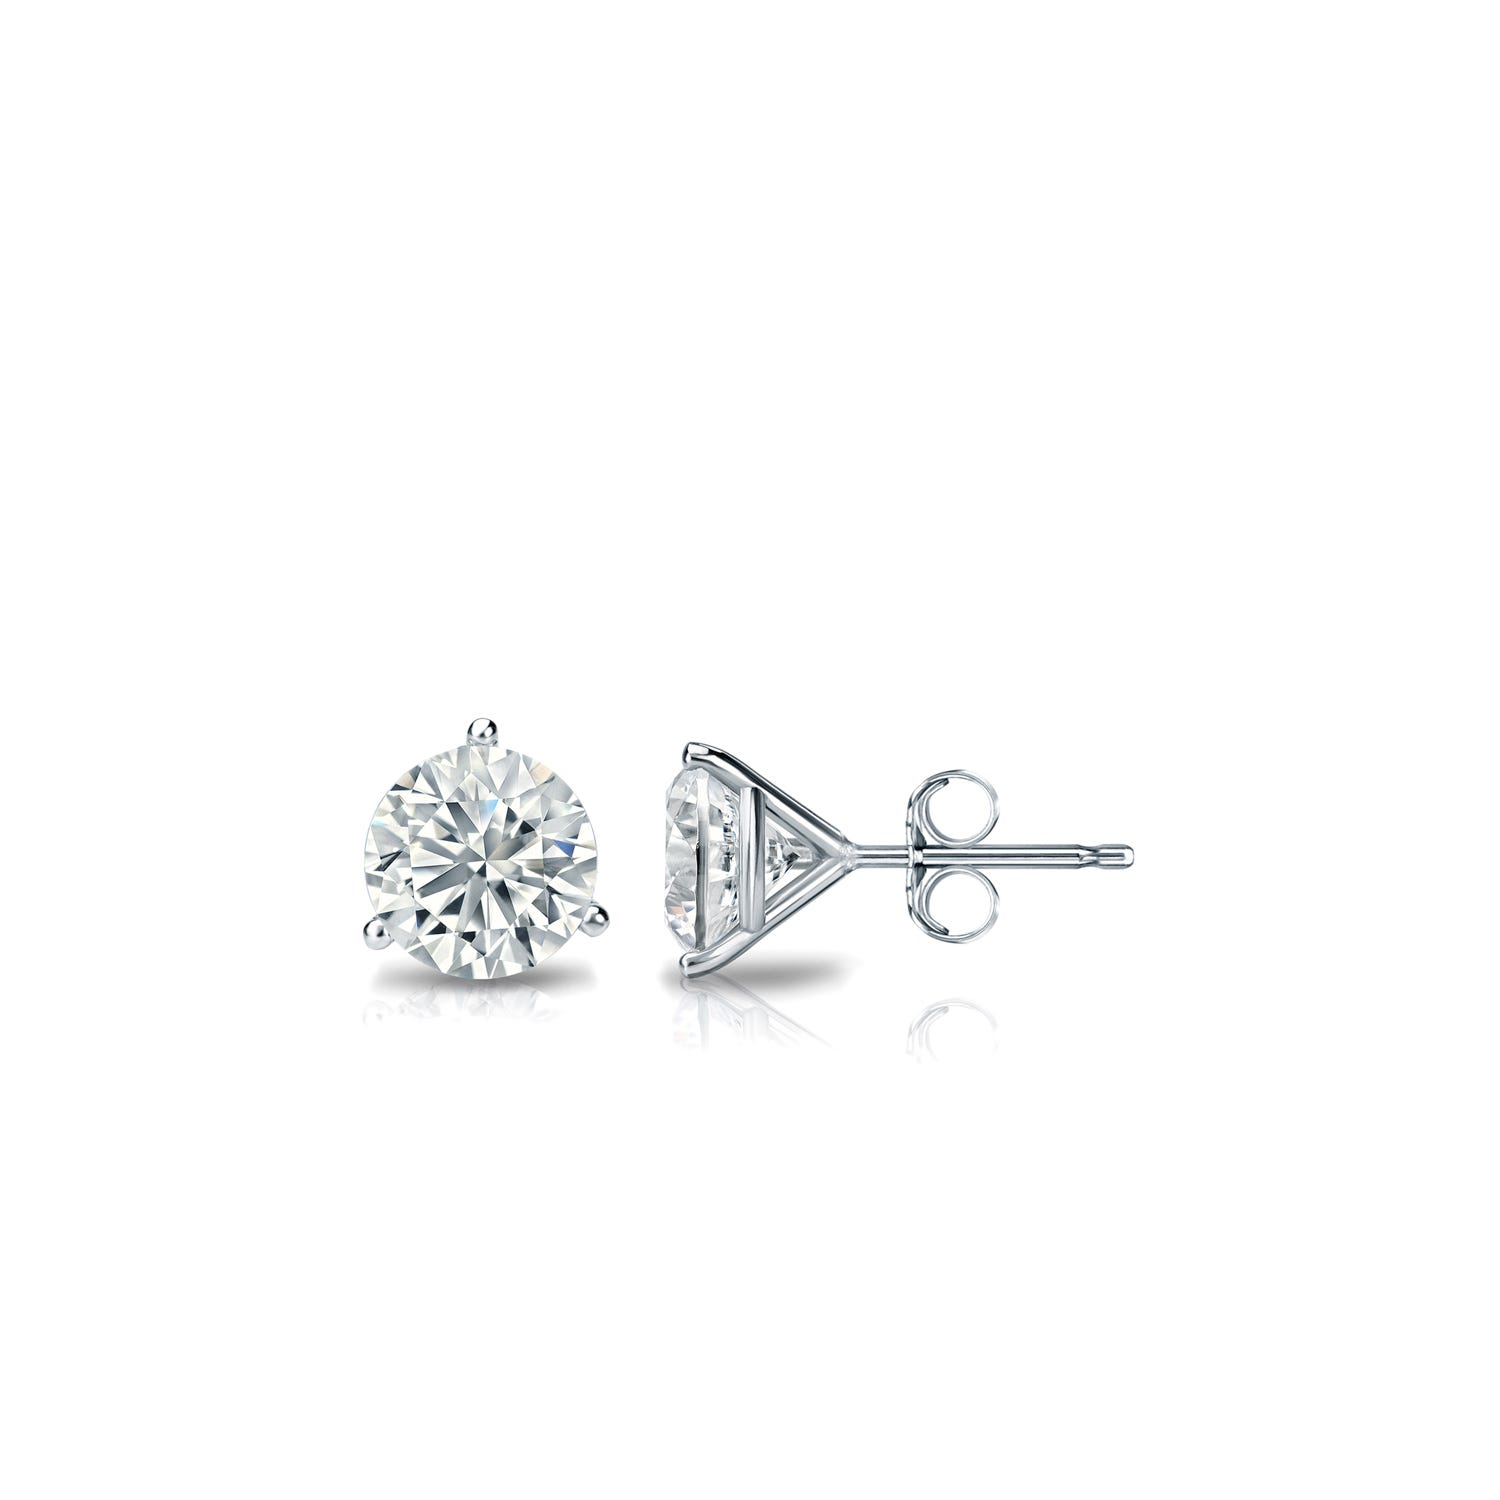 1/3 CTTW Round Diamond Solitaire Stud Earrings IJ SI2 in Platinum 3-Prong Setting